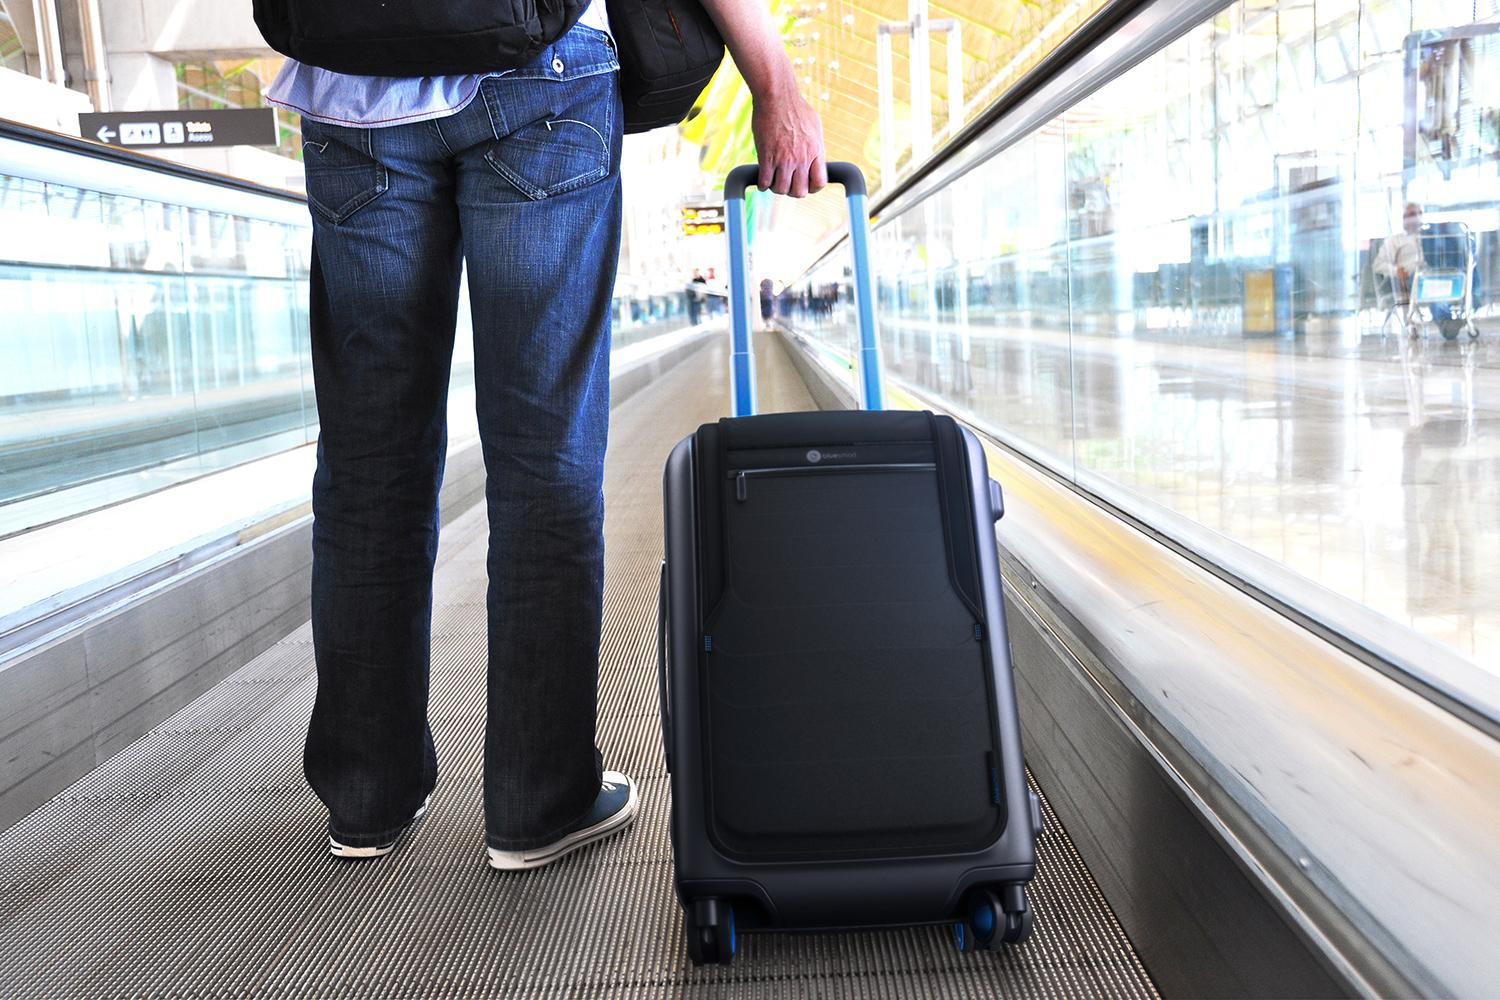 Carry On Luggage Is The Easy Way to Avoid Baggage Fees. Learning to Pack Efficiently can Make it Very Practical to Use Carry On Luggage As Your Only Luggage on a Trip.